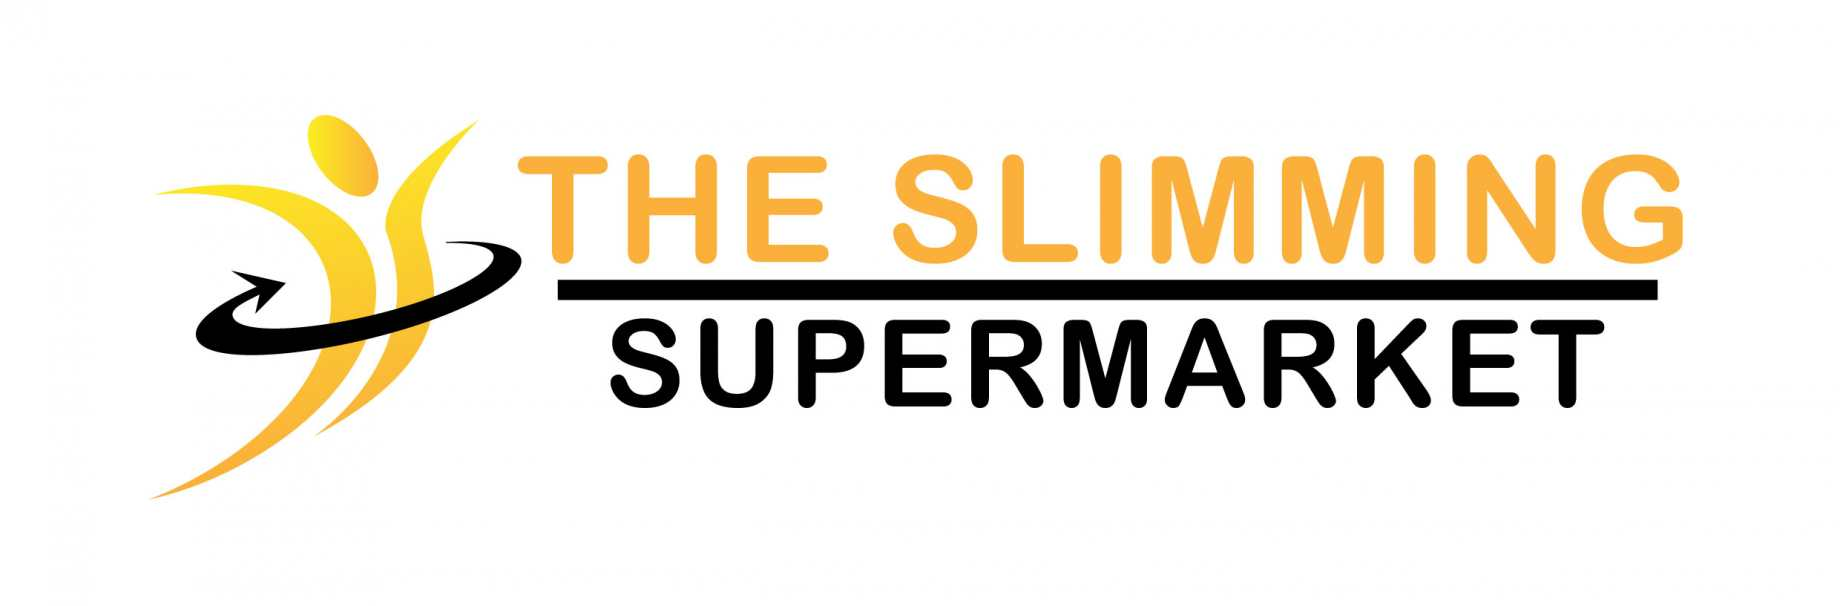 TheSlimmingSupermarket Logo